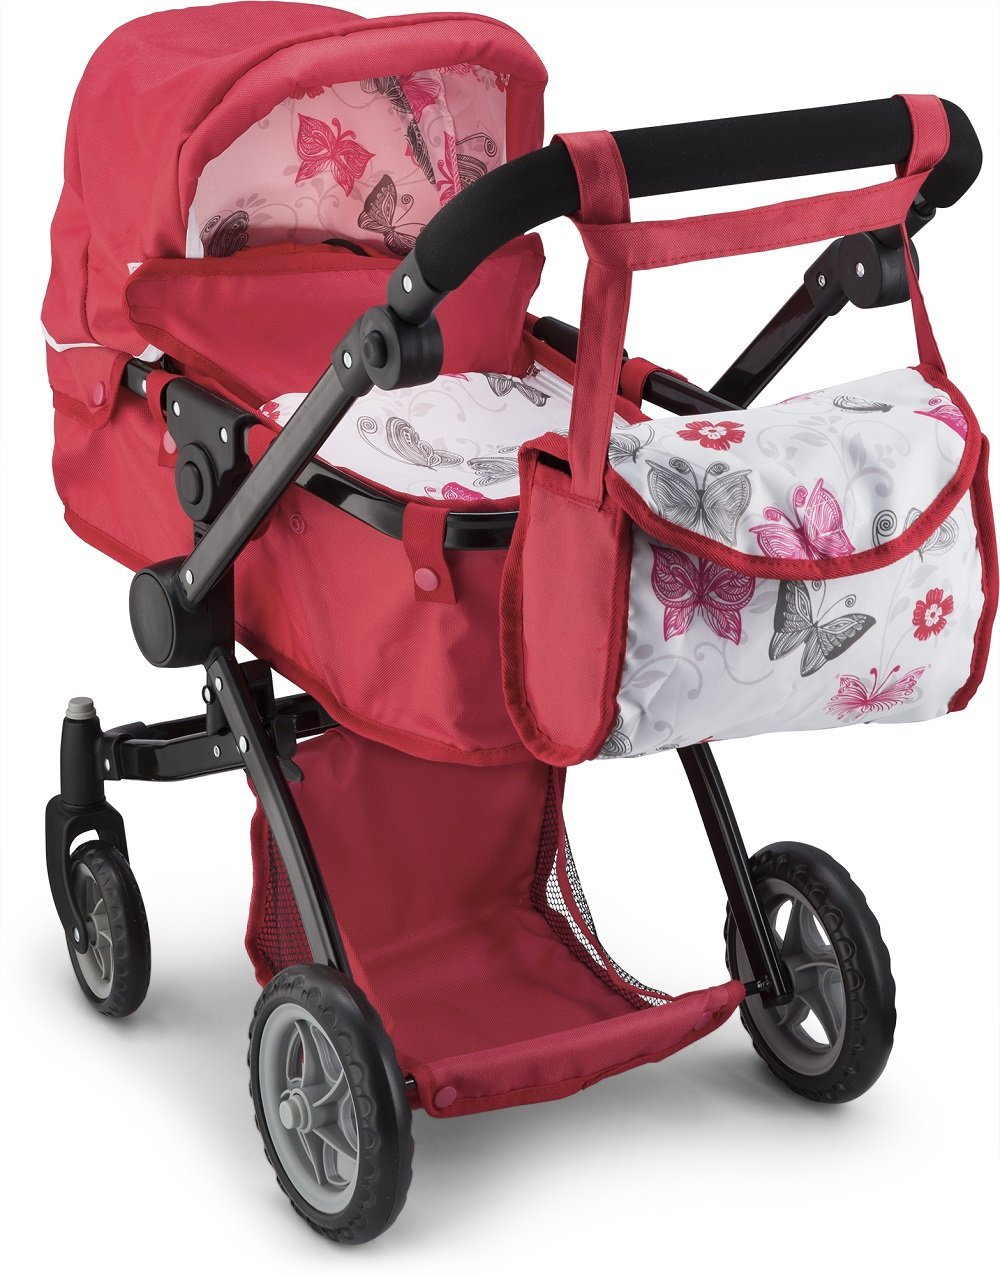 Litti Pritti Doll Strollers Pro Deluxe Doll Stroller with Swiveling Wheels, Adjustable Handle and Carriage Bag